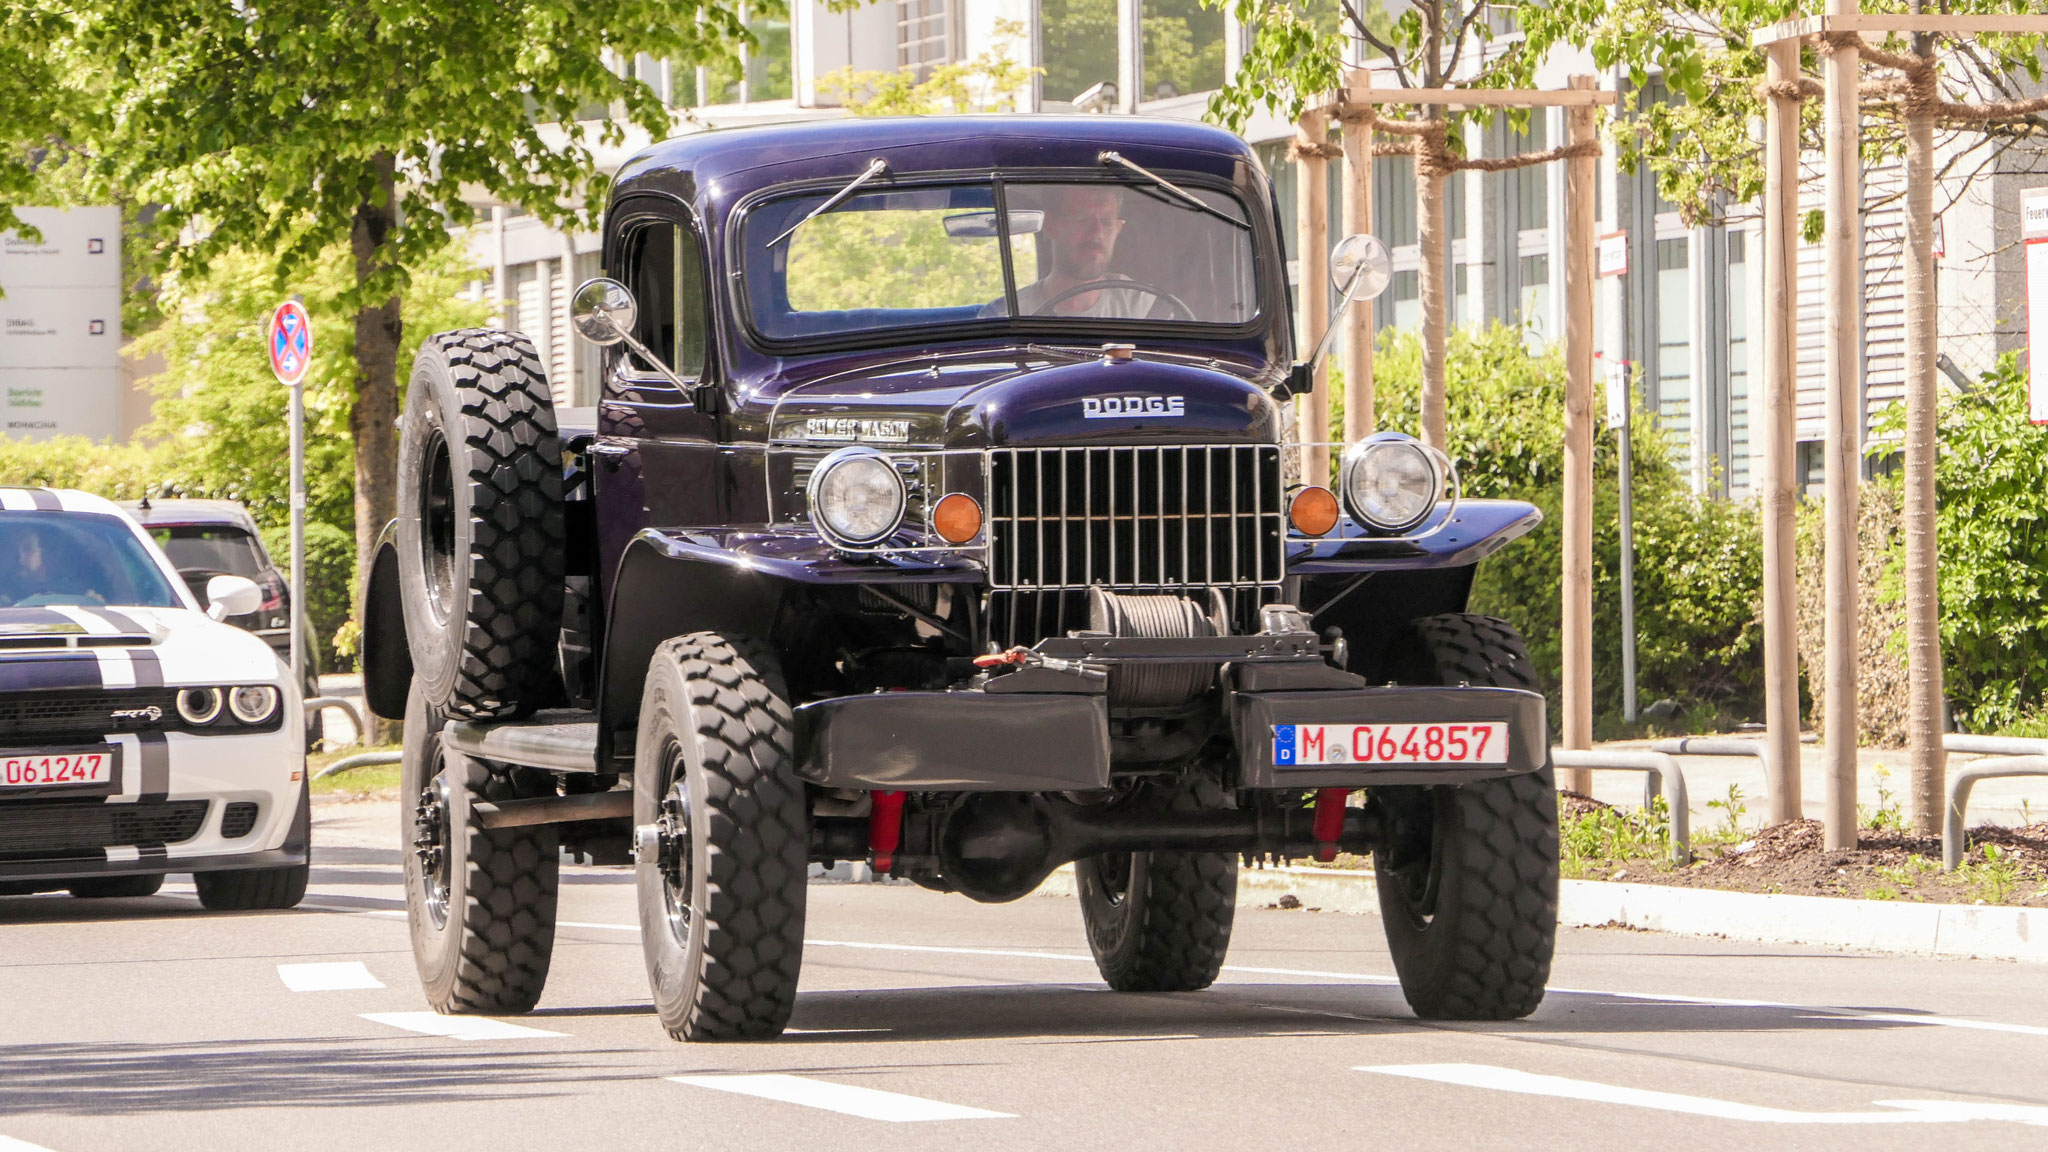 Dodge Power Wagon - M-064857